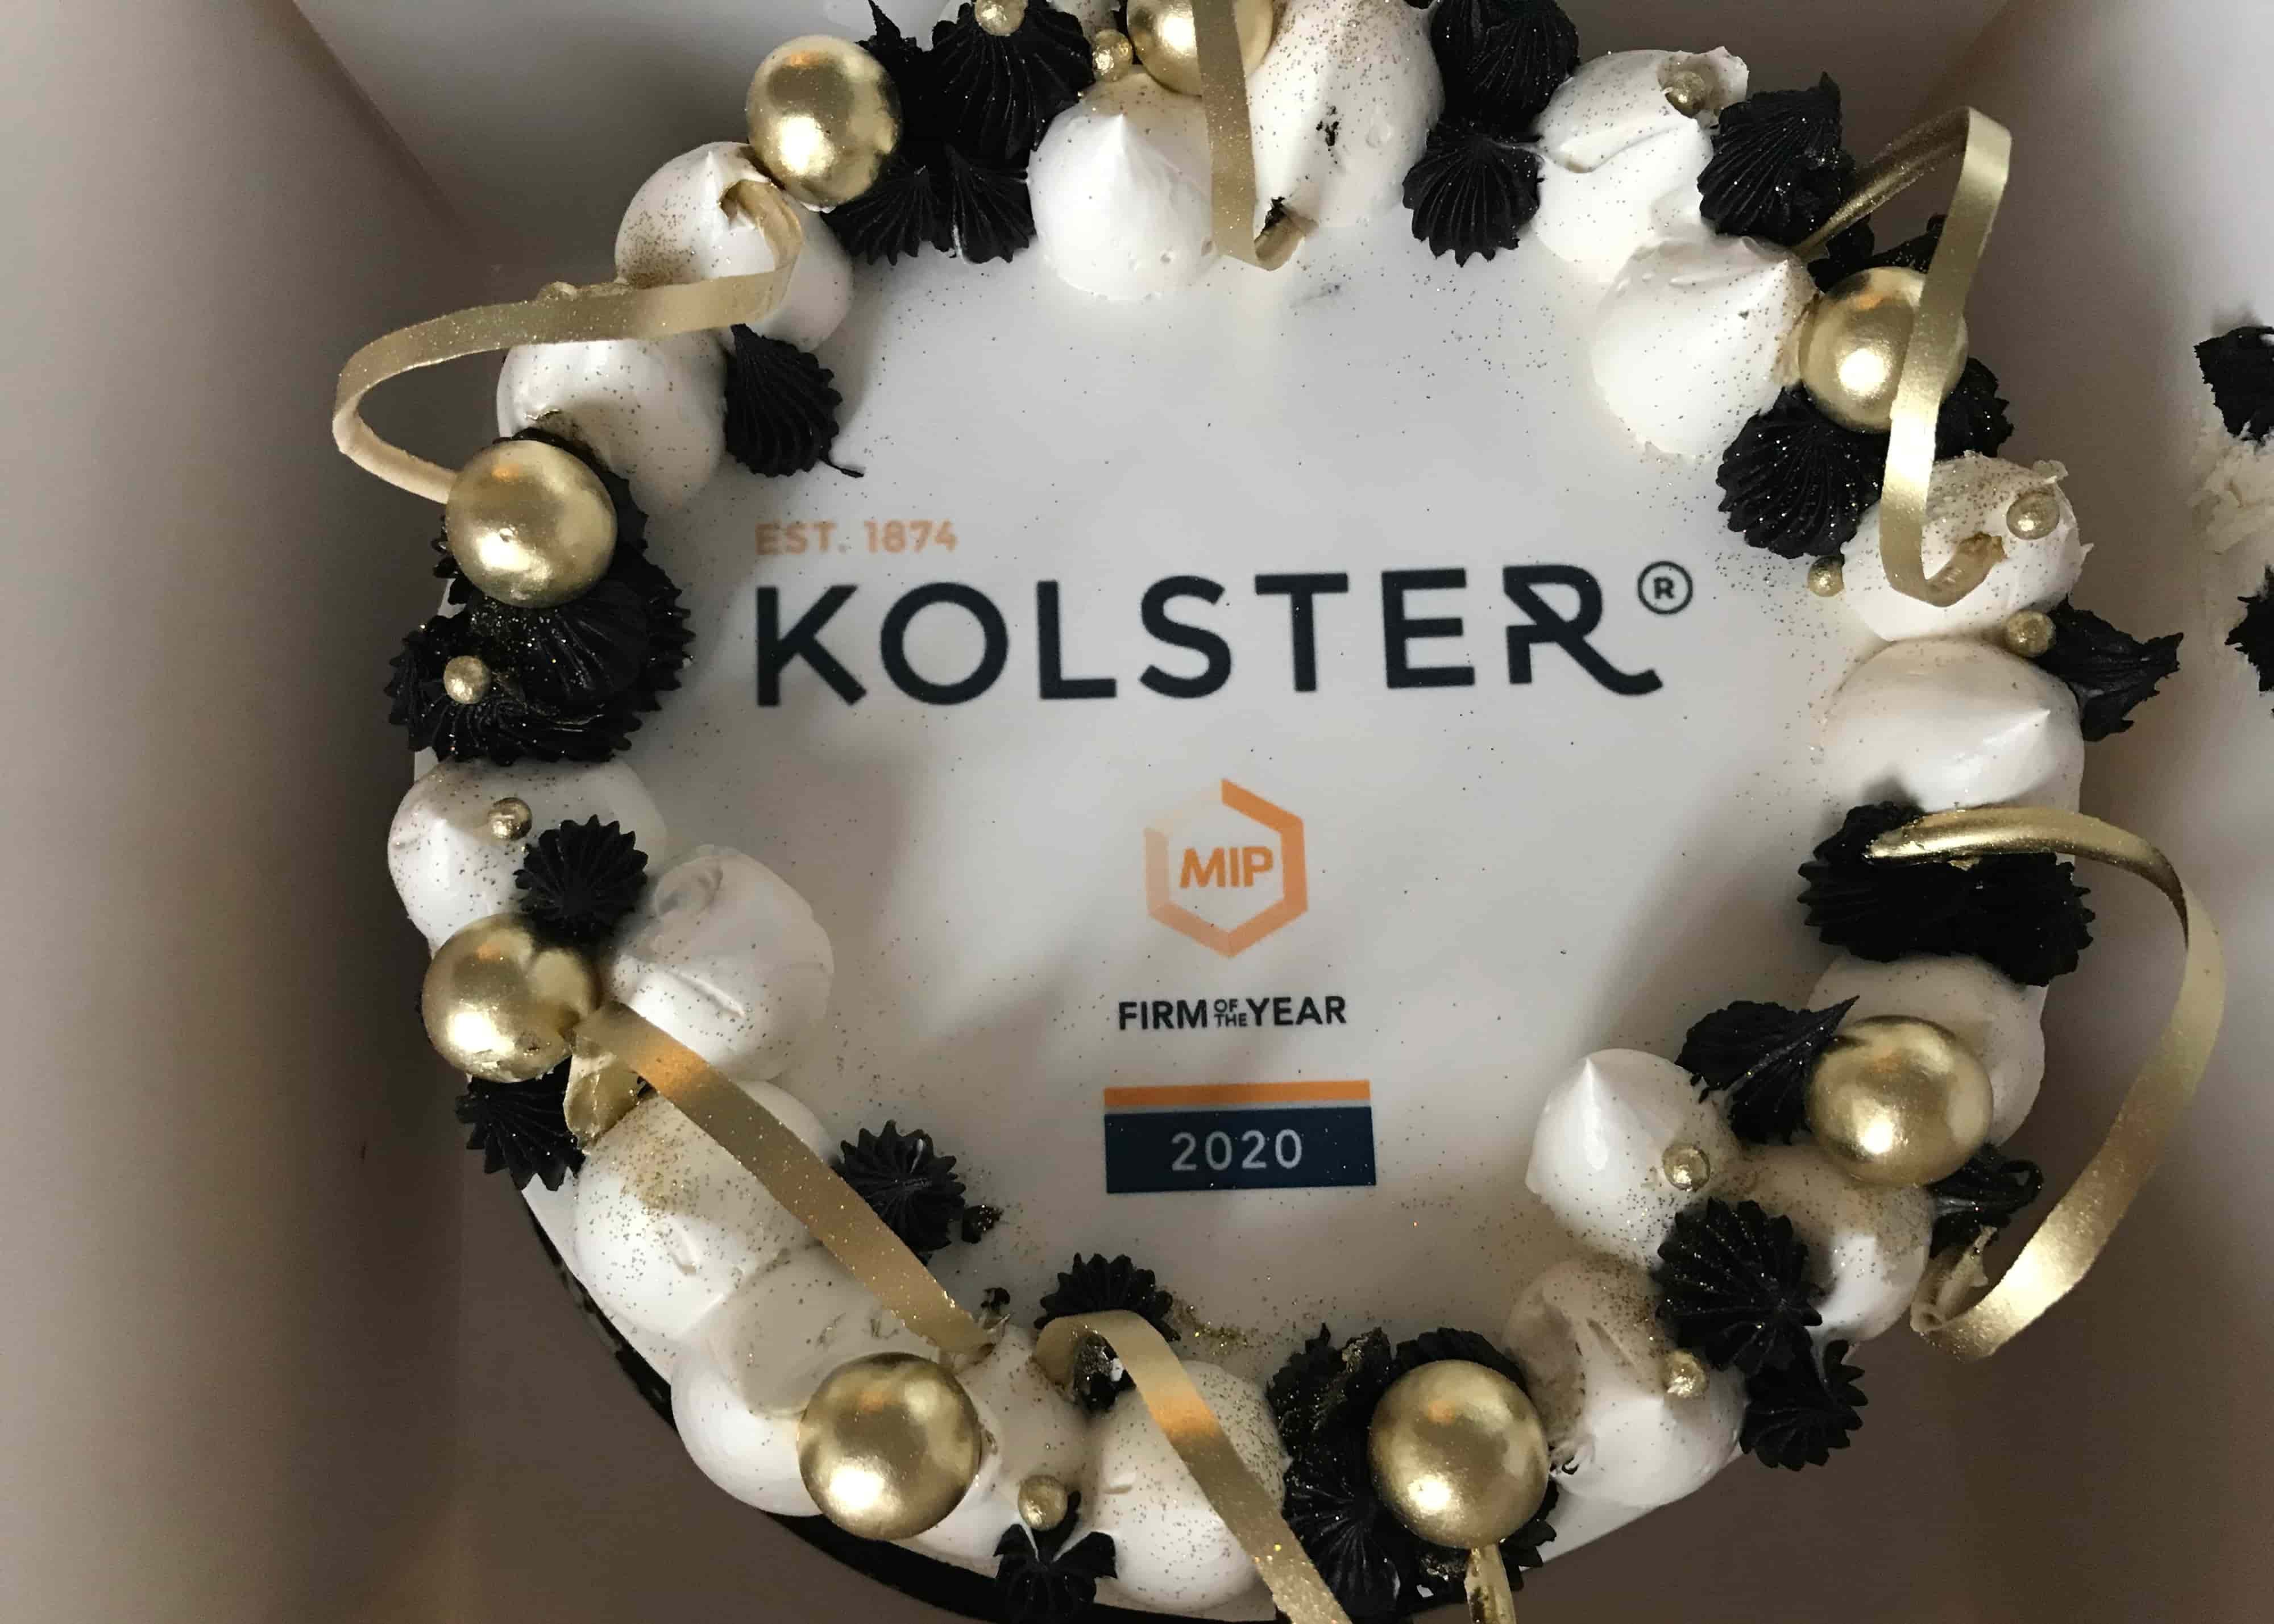 Kolster_Trademark Prosecution Firm of the Year 2020_MIP Awards(1)